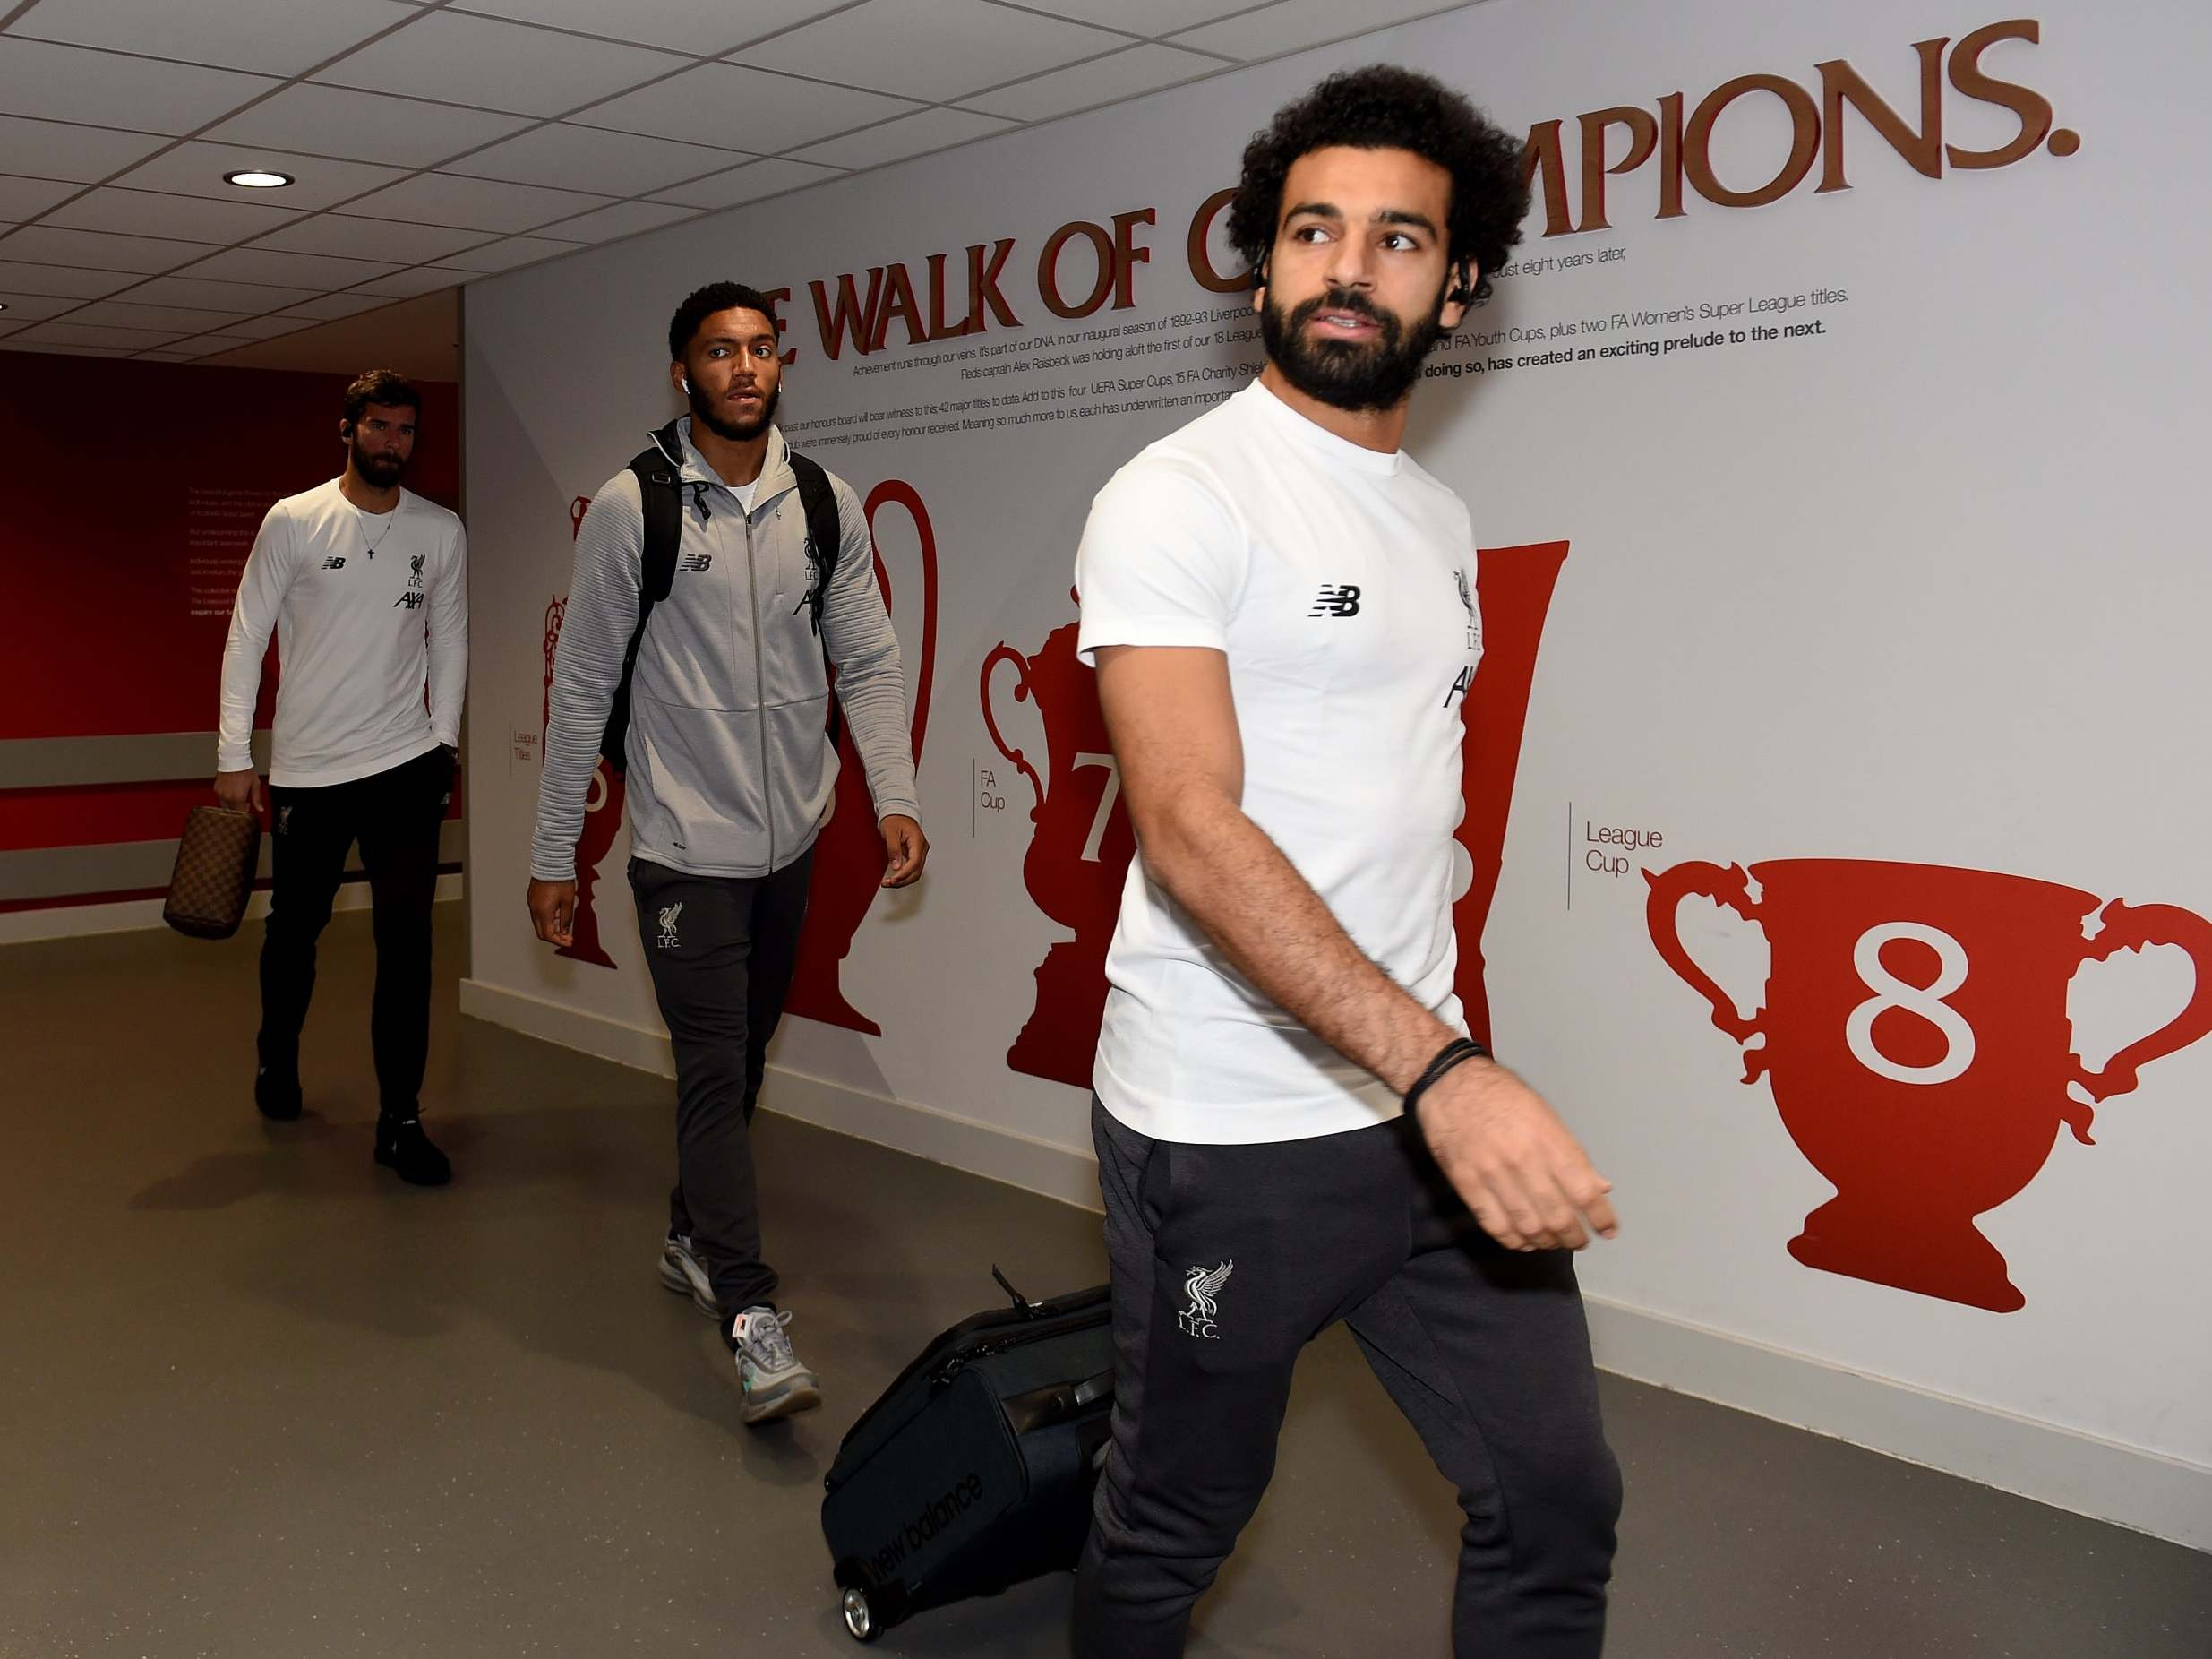 Liverpool vs Tottenham LIVE: Team news, build-up and updates from Premier League fixture at Anfield